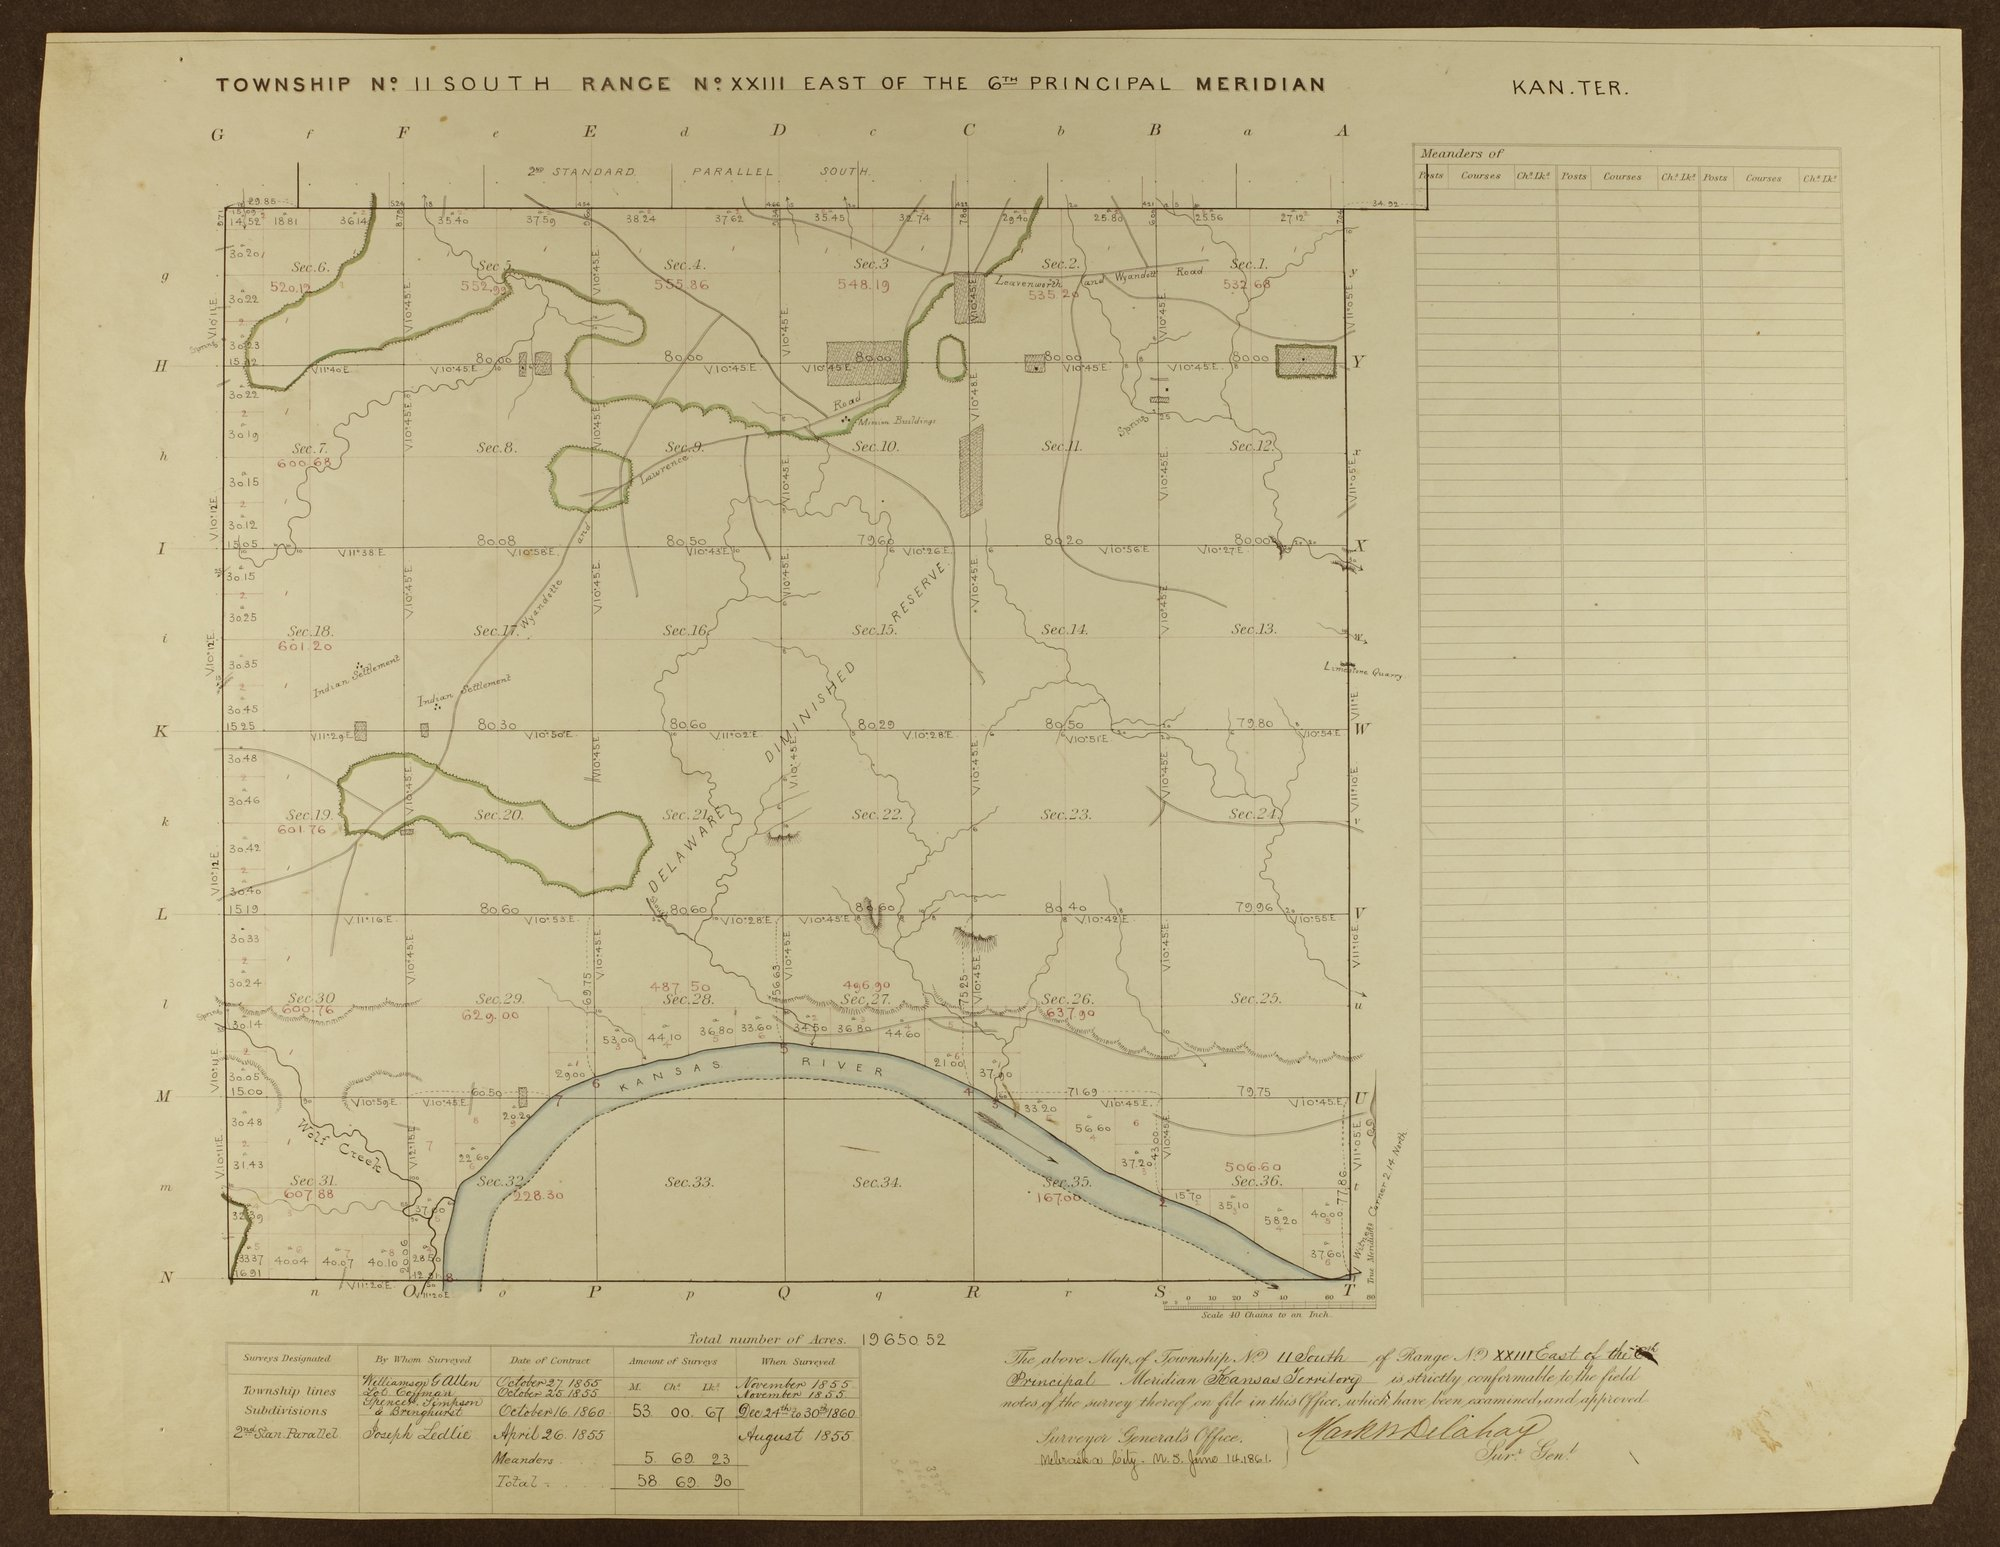 Government Land Office (GLO) survey maps for portions of Wyandotte